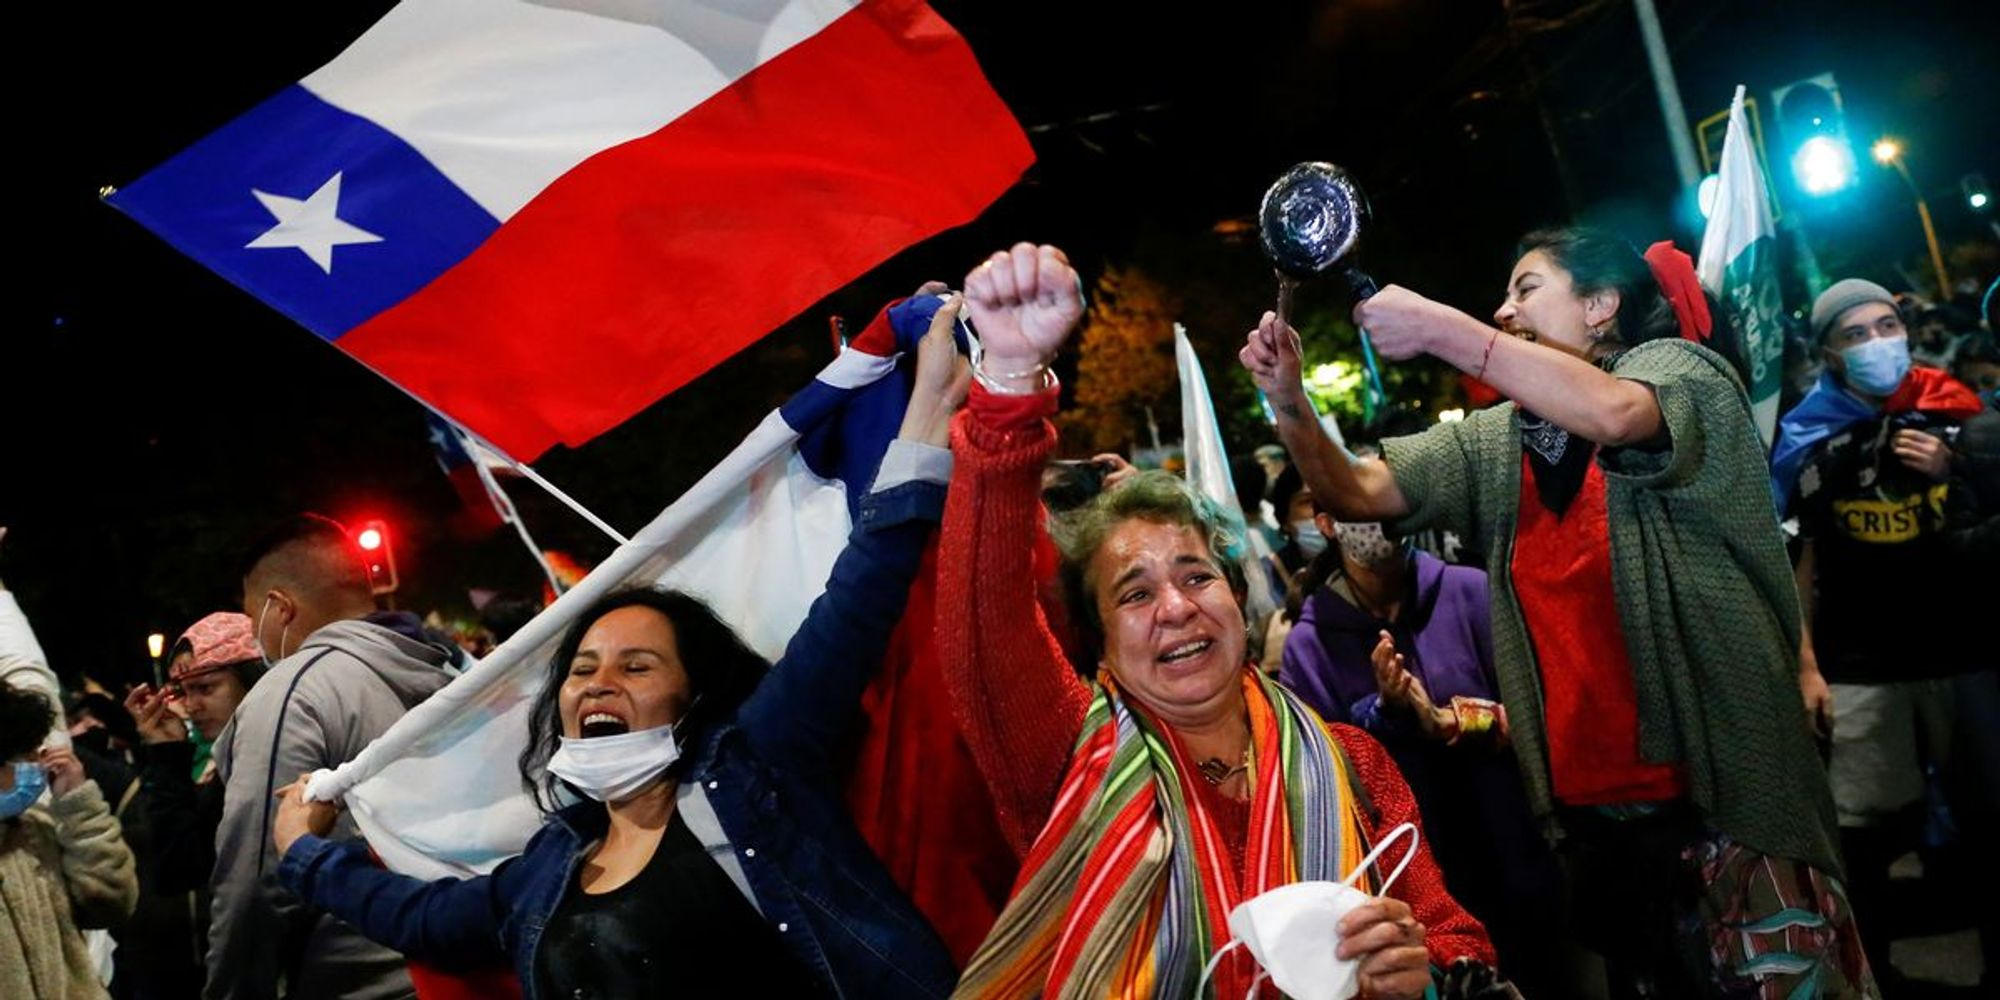 Chile wants a new constitution. Here's why.